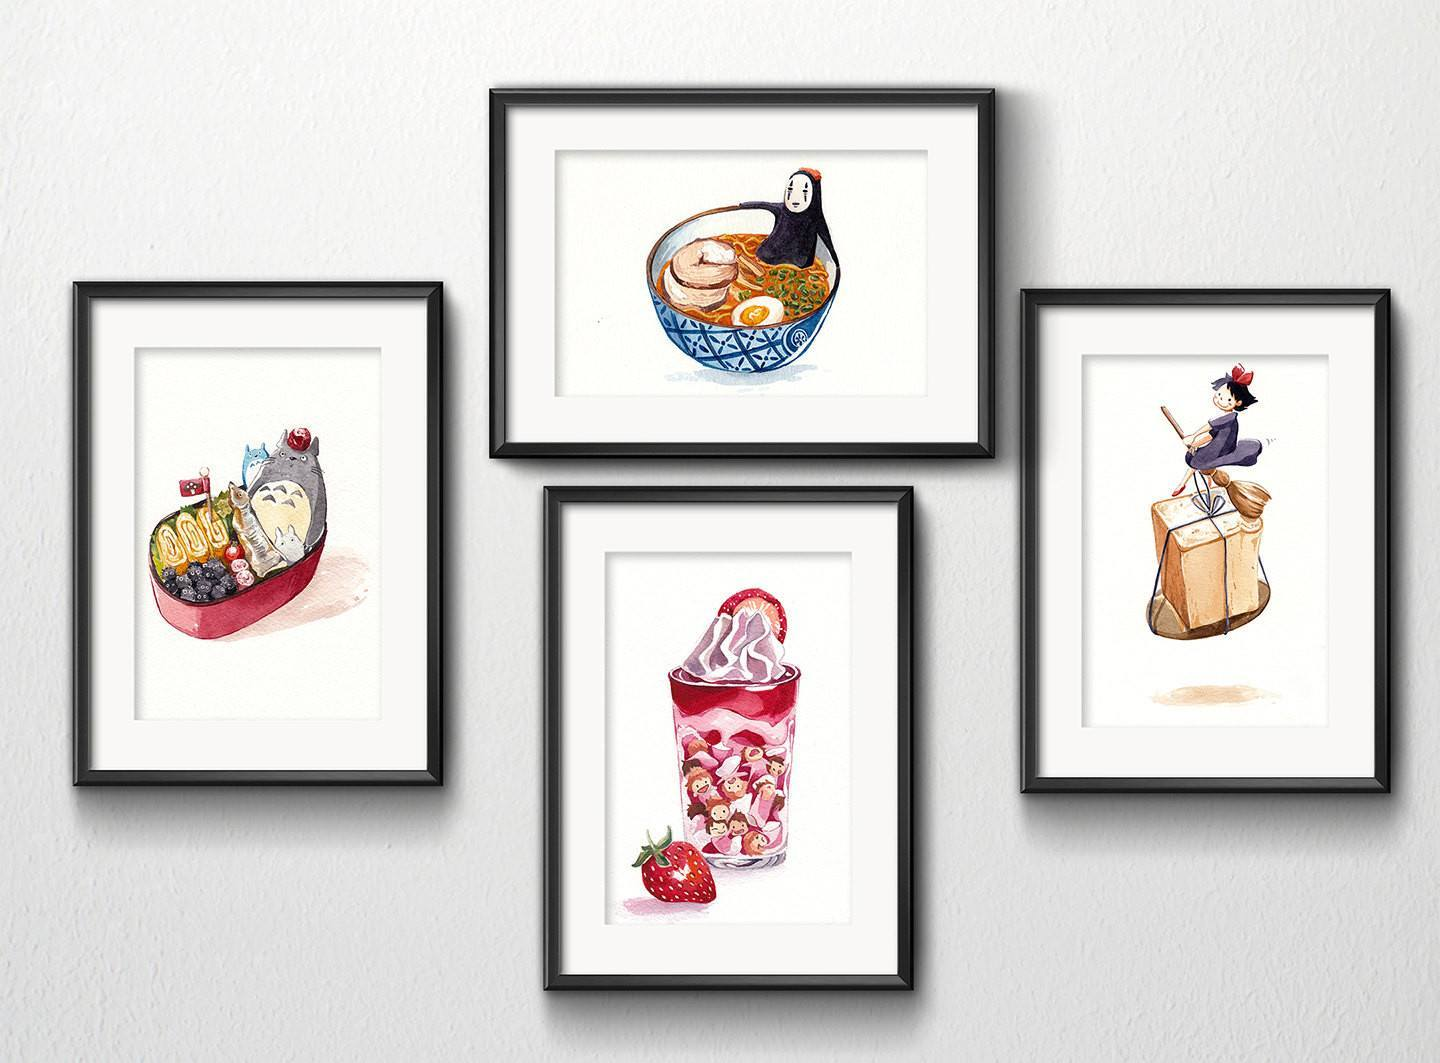 Merveilleux PenelopeLovePrints Set Of 4 Studio Ghibli Watercolor Kitchen Art 5x7 Prints  Prints   1